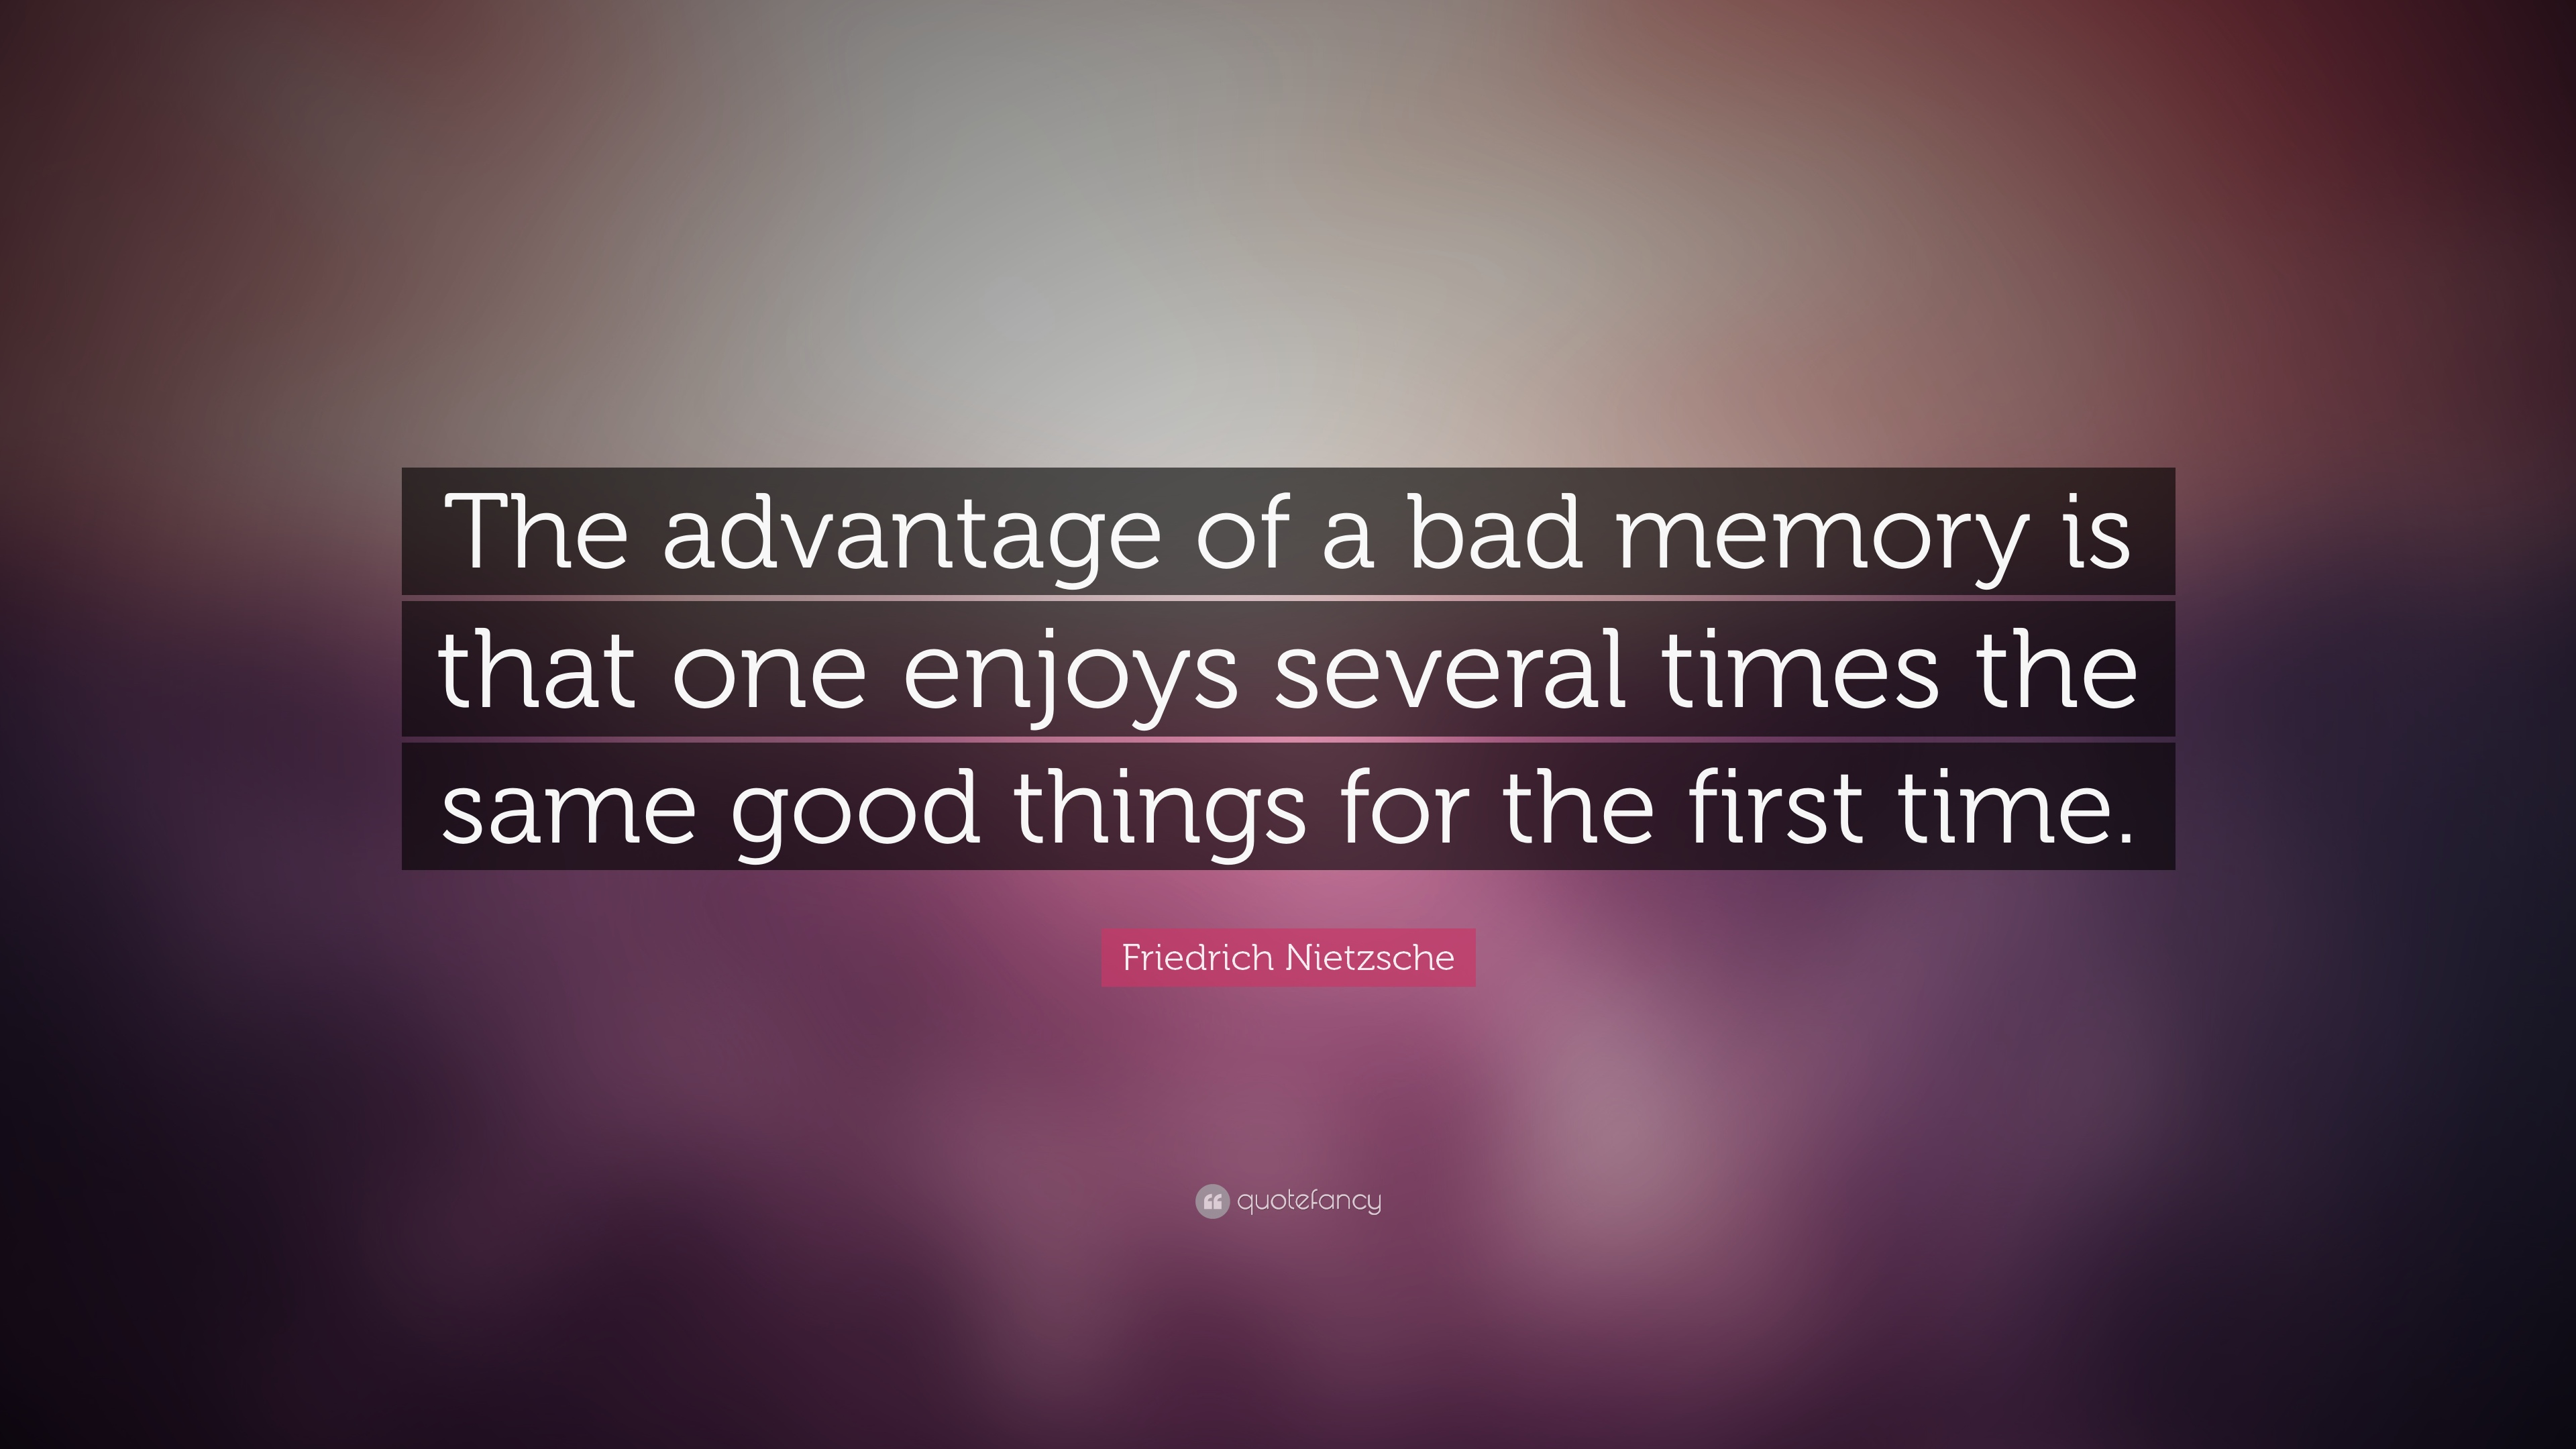 Friedrich Nietzsche Quote The Advantage Of A Bad Memory Is That